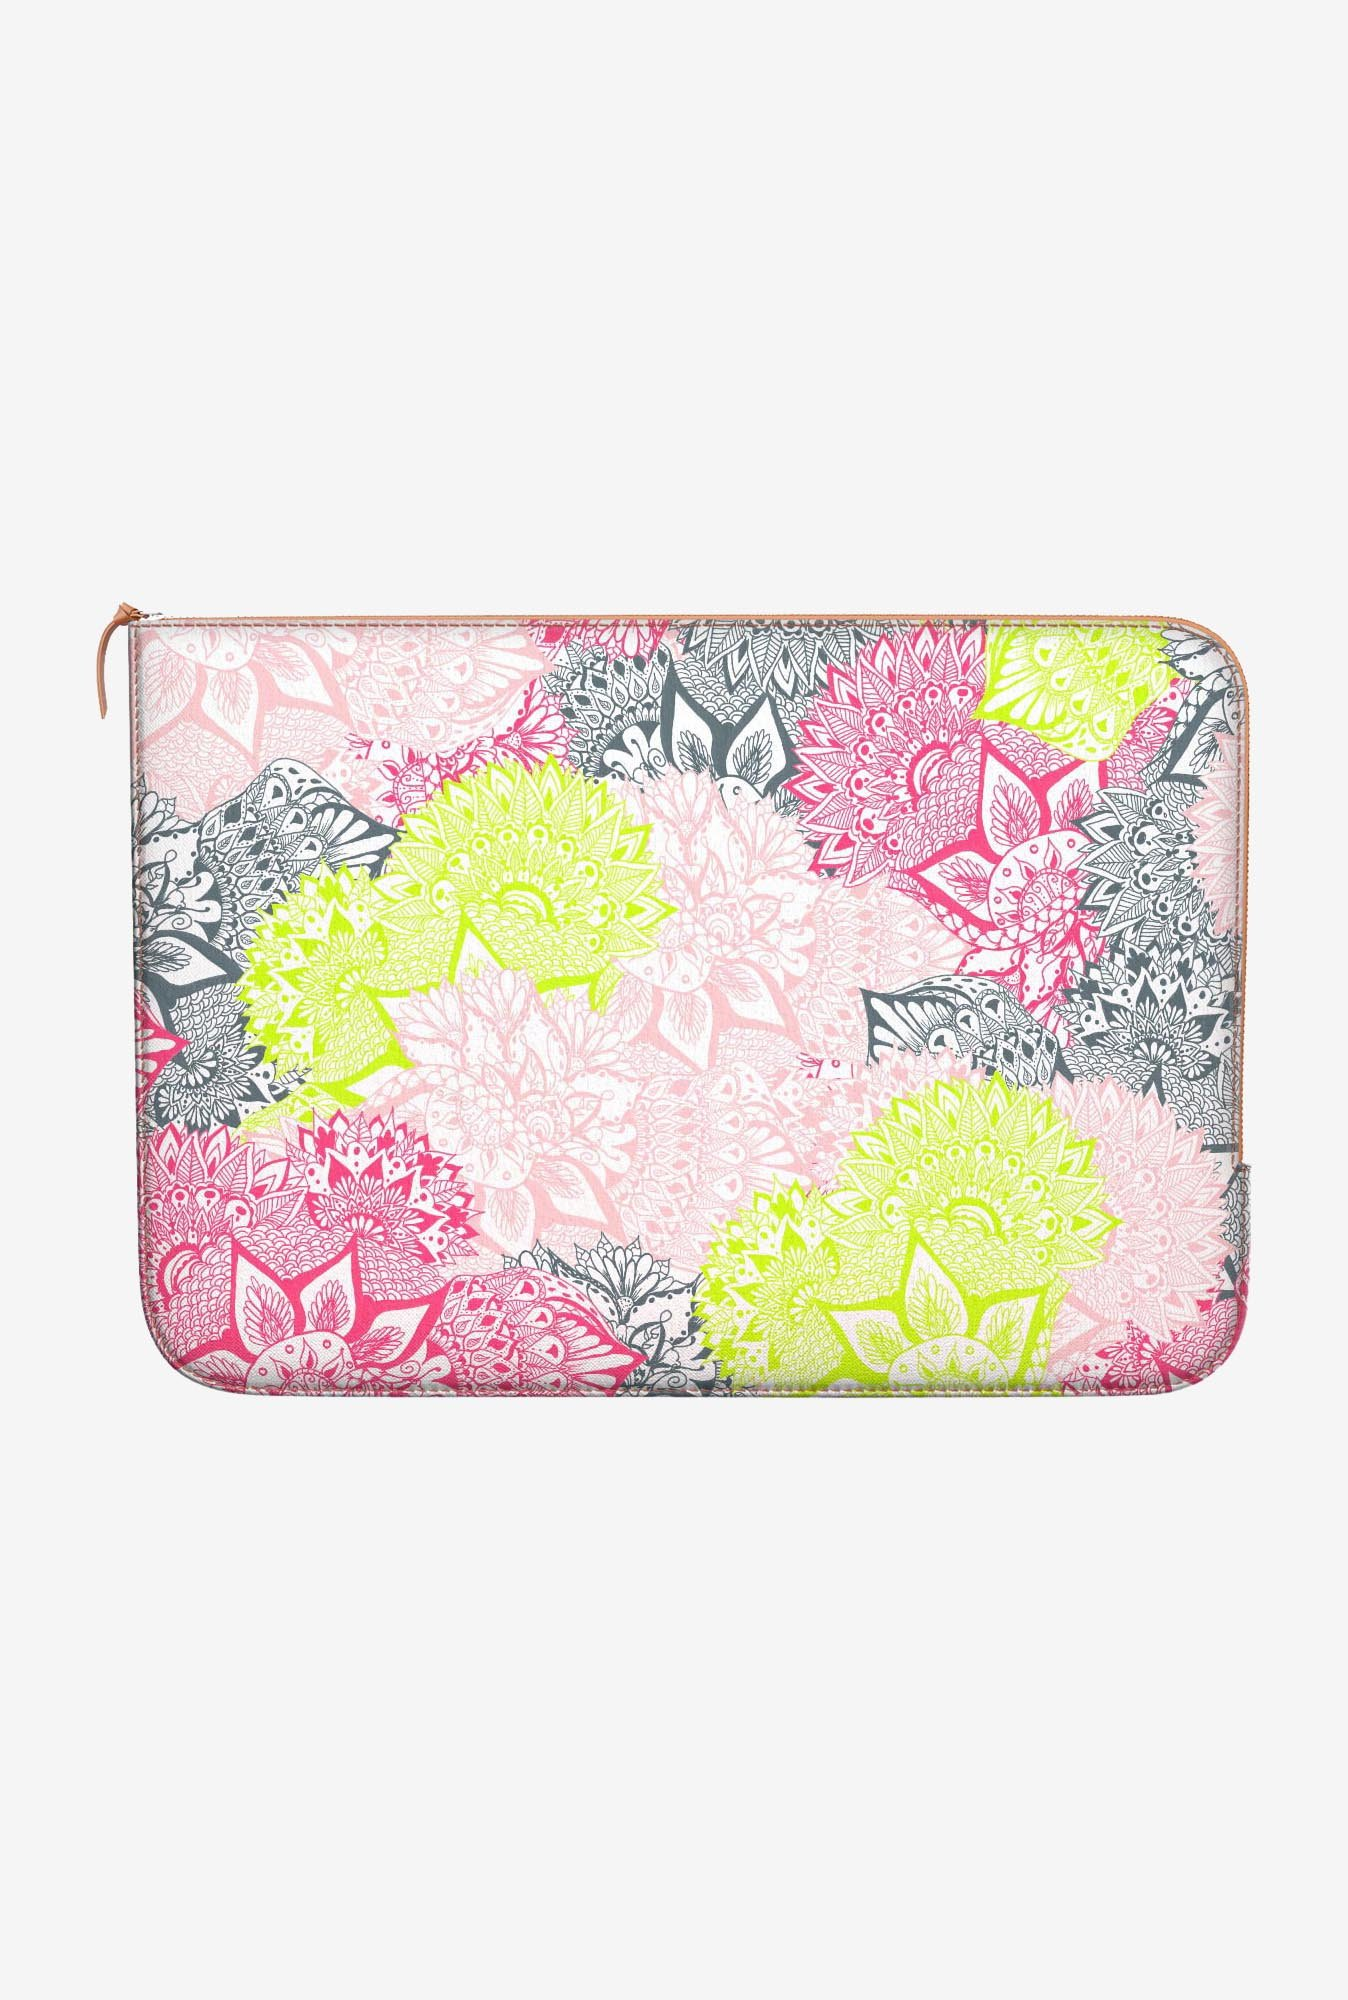 DailyObjects Paisley Pattern MacBook Air 13 Zippered Sleeve